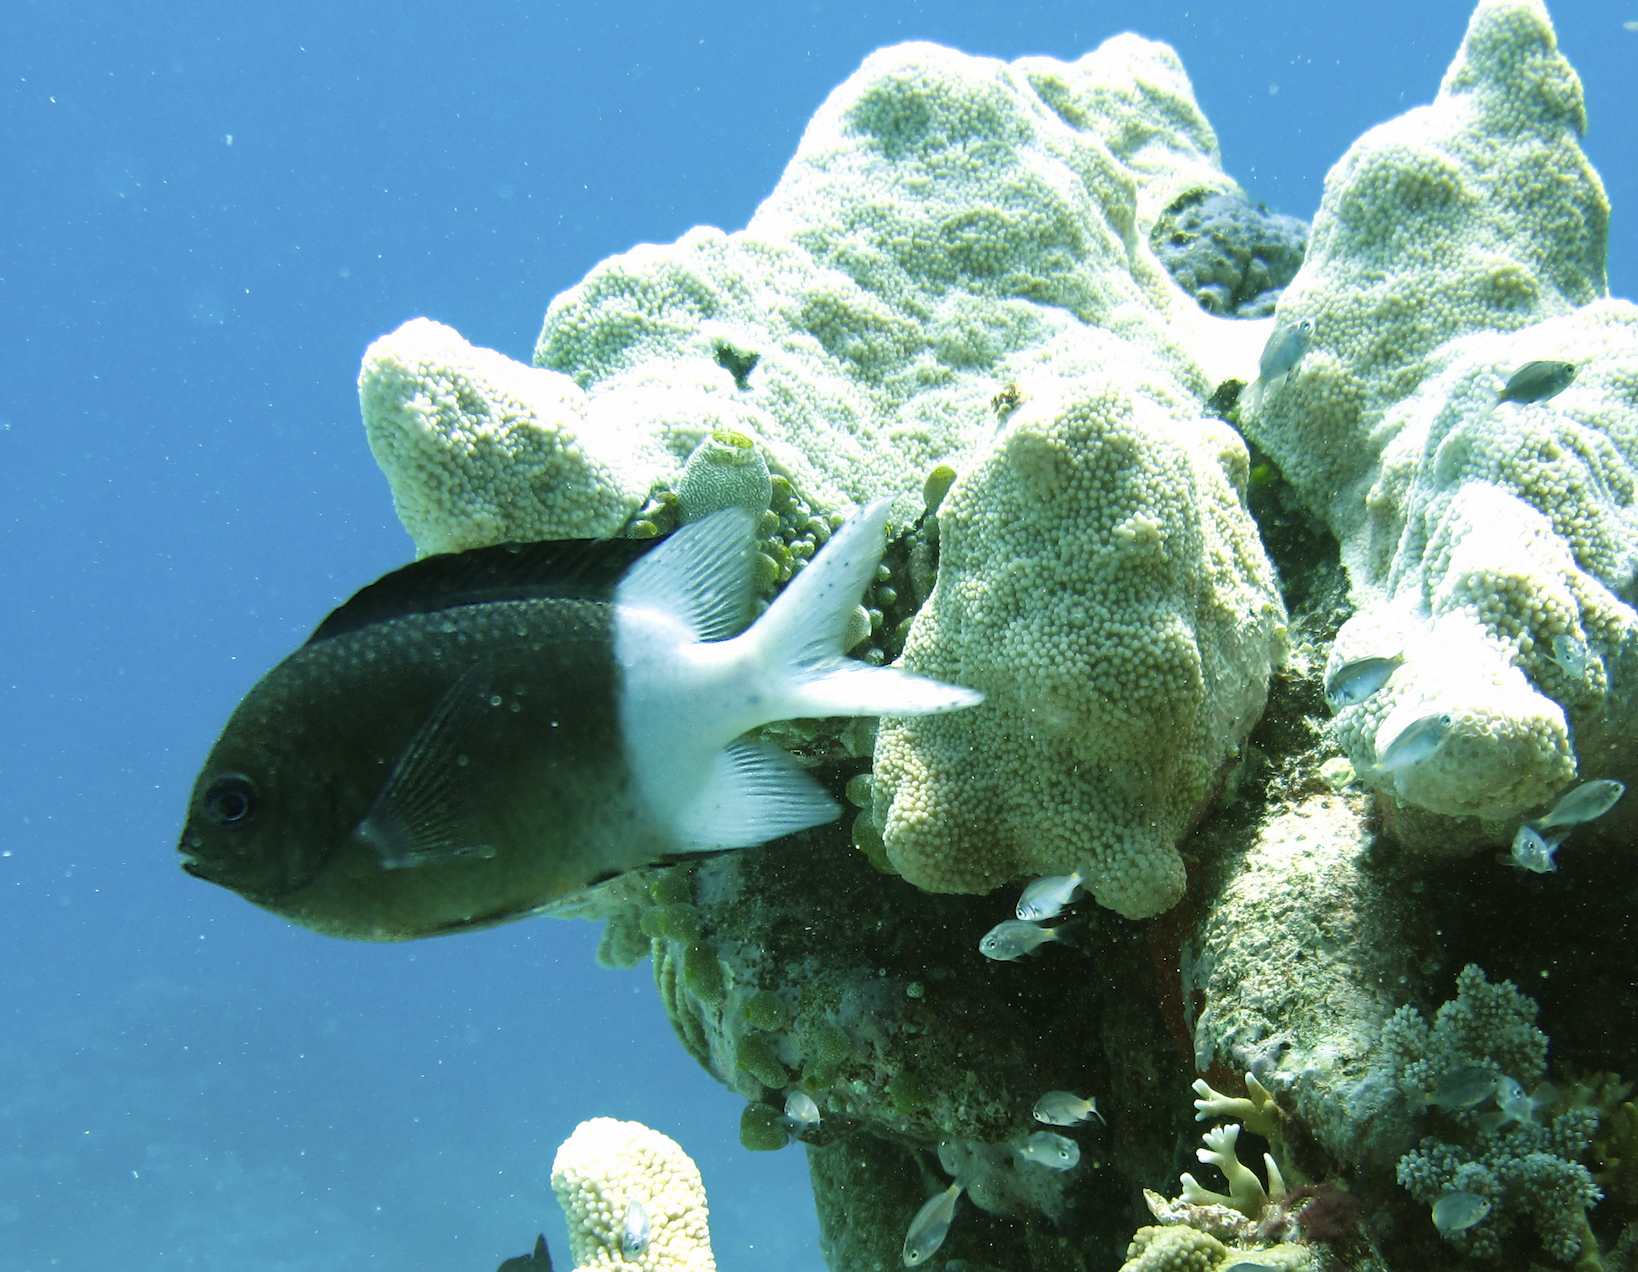 A team of researchers is reporting that reef fish are more equipped to handle global warming than previously realized.